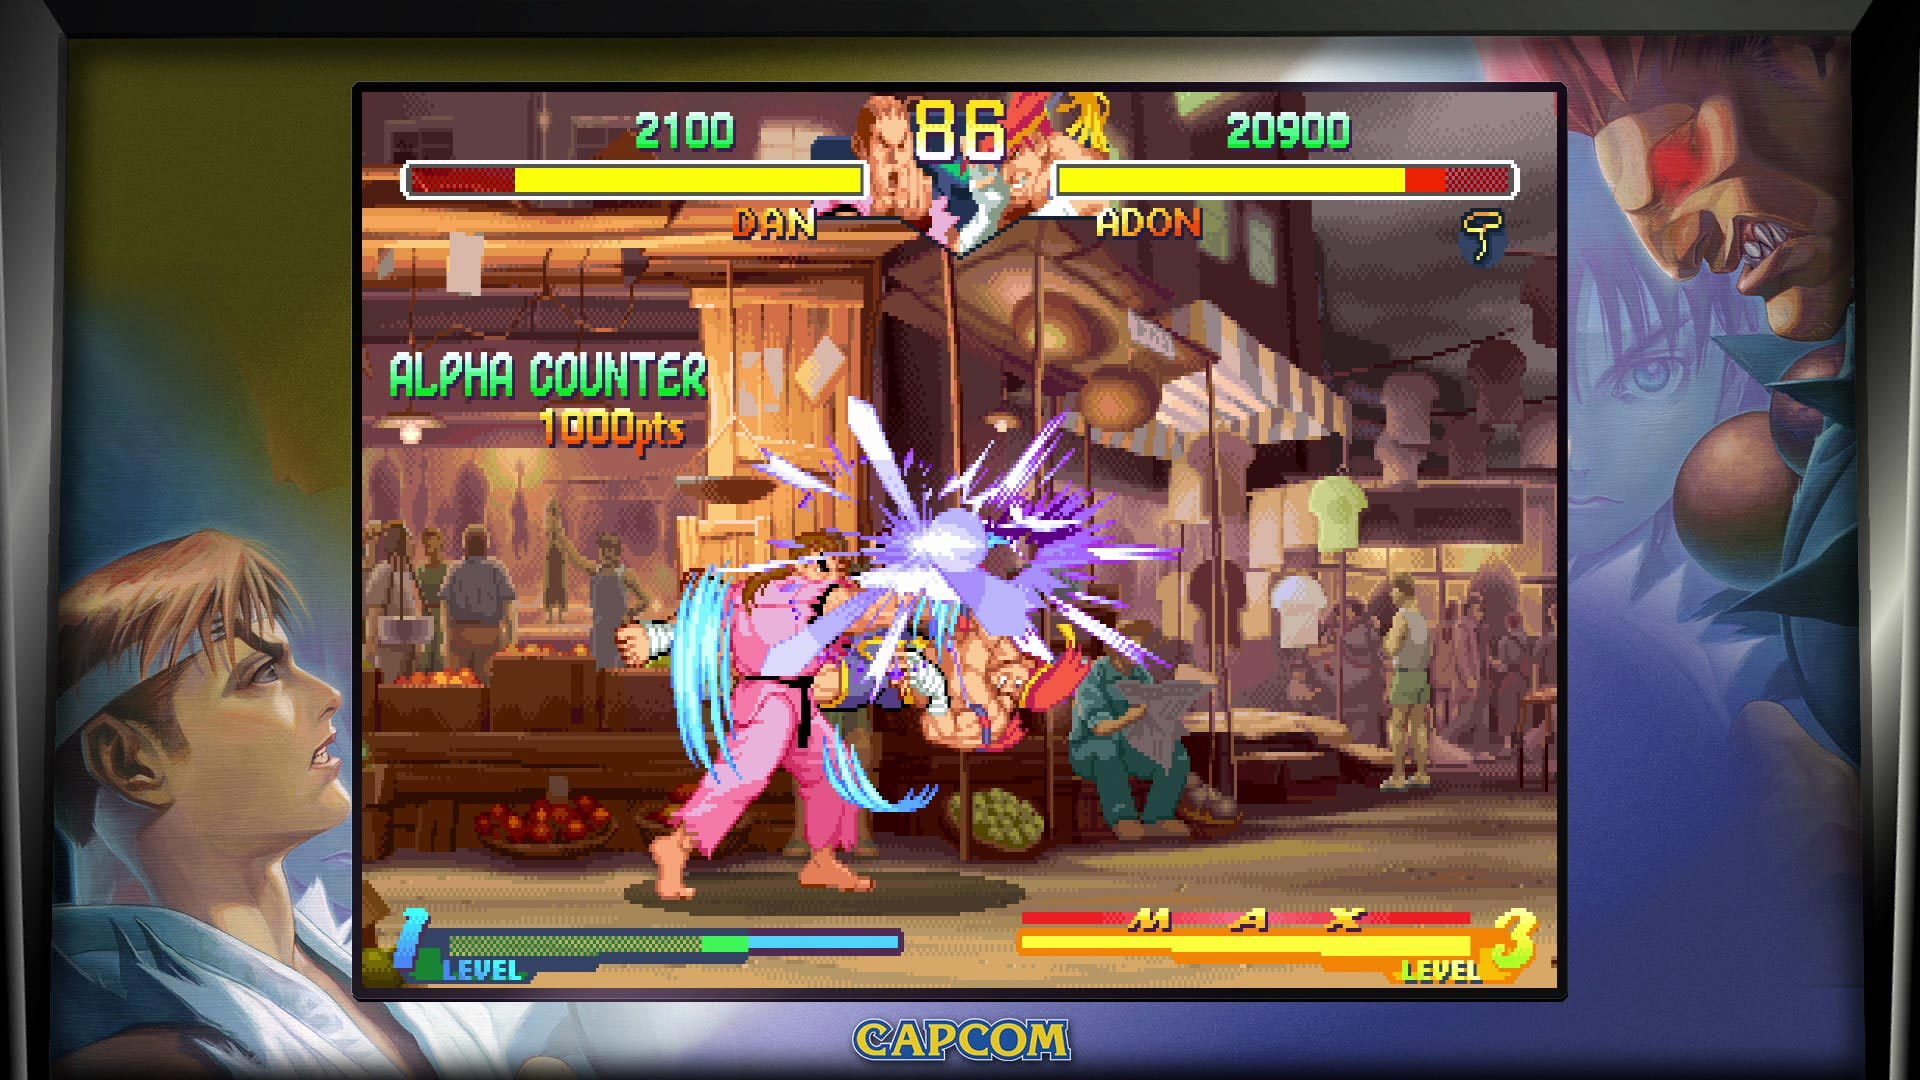 Street Fighter 30th Anniversary Collection images 7 out of 17 image gallery